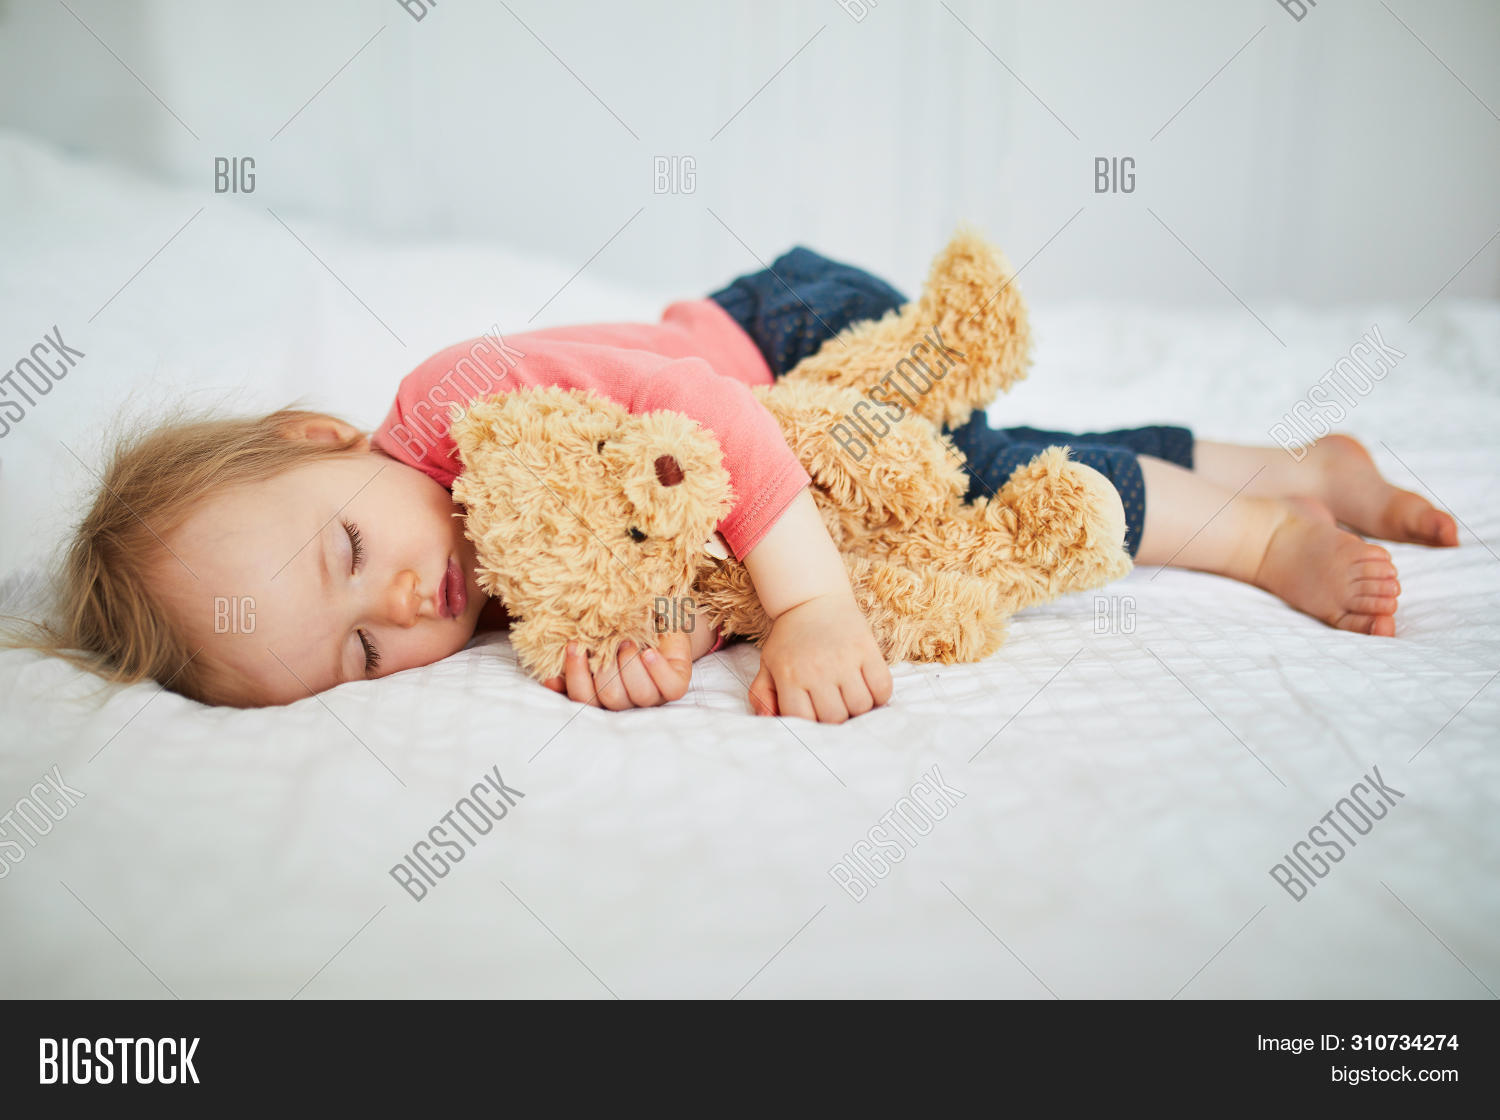 adorable,baby,bear,beautiful,bed,bedding,bedtime,blond,calm,care,child,childcare,childhood,children,comforter,cute,day,daycare,dream,girl,happy,healthy,home,human,infant,interior,kid,little,nap,napping,nursery,one,people,person,relax,relaxing,resting,room,schedule,sleep,sleeping,small,soft,stuffed,sweet,teddy,textile,toddler,toy